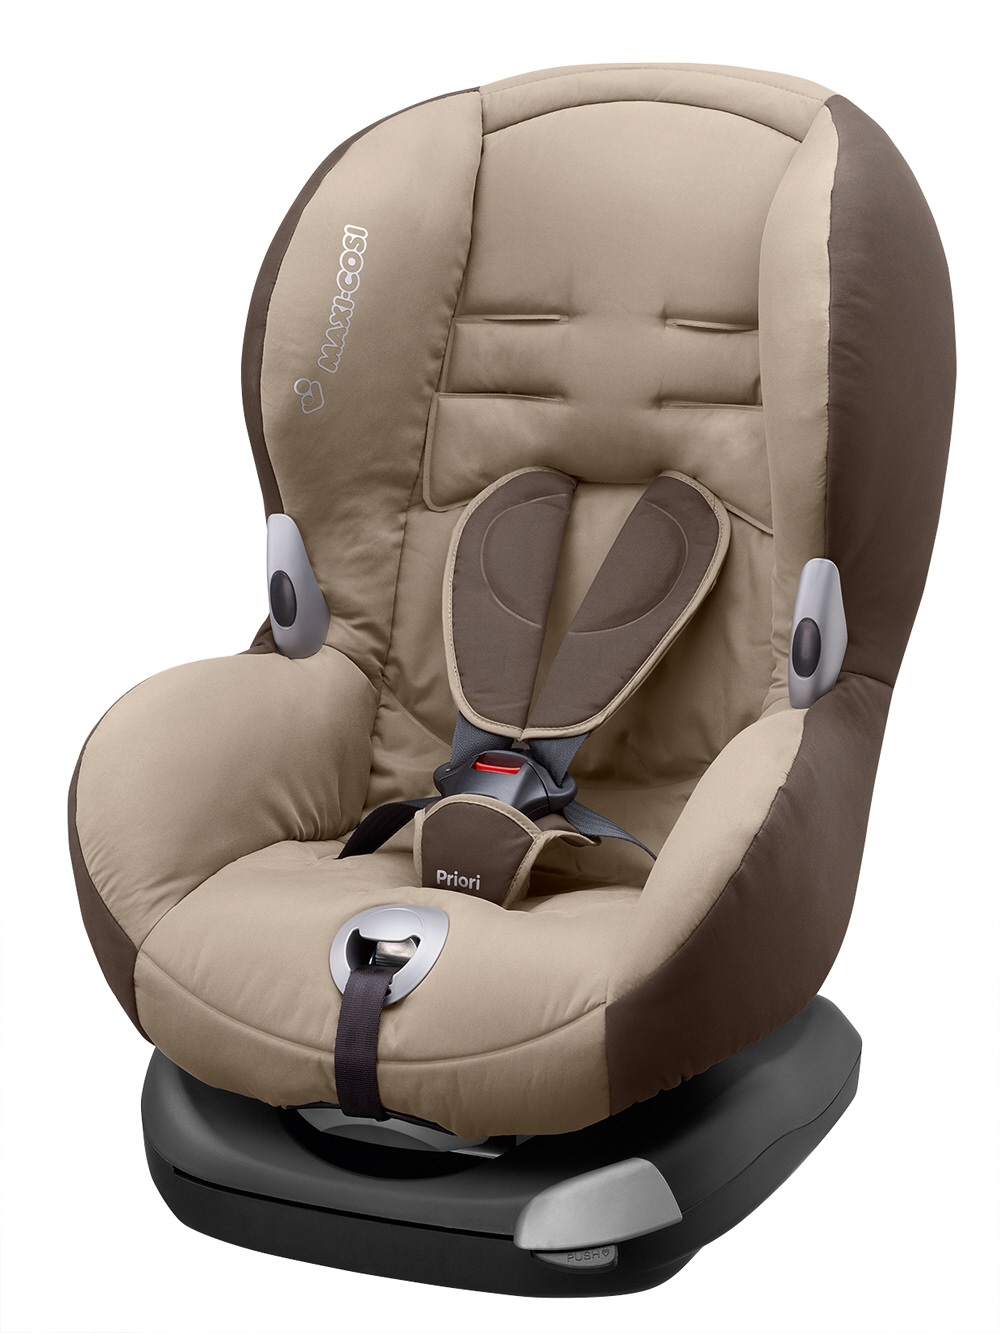 maxi cosi child car seat priori xp buy at kidsroom car. Black Bedroom Furniture Sets. Home Design Ideas